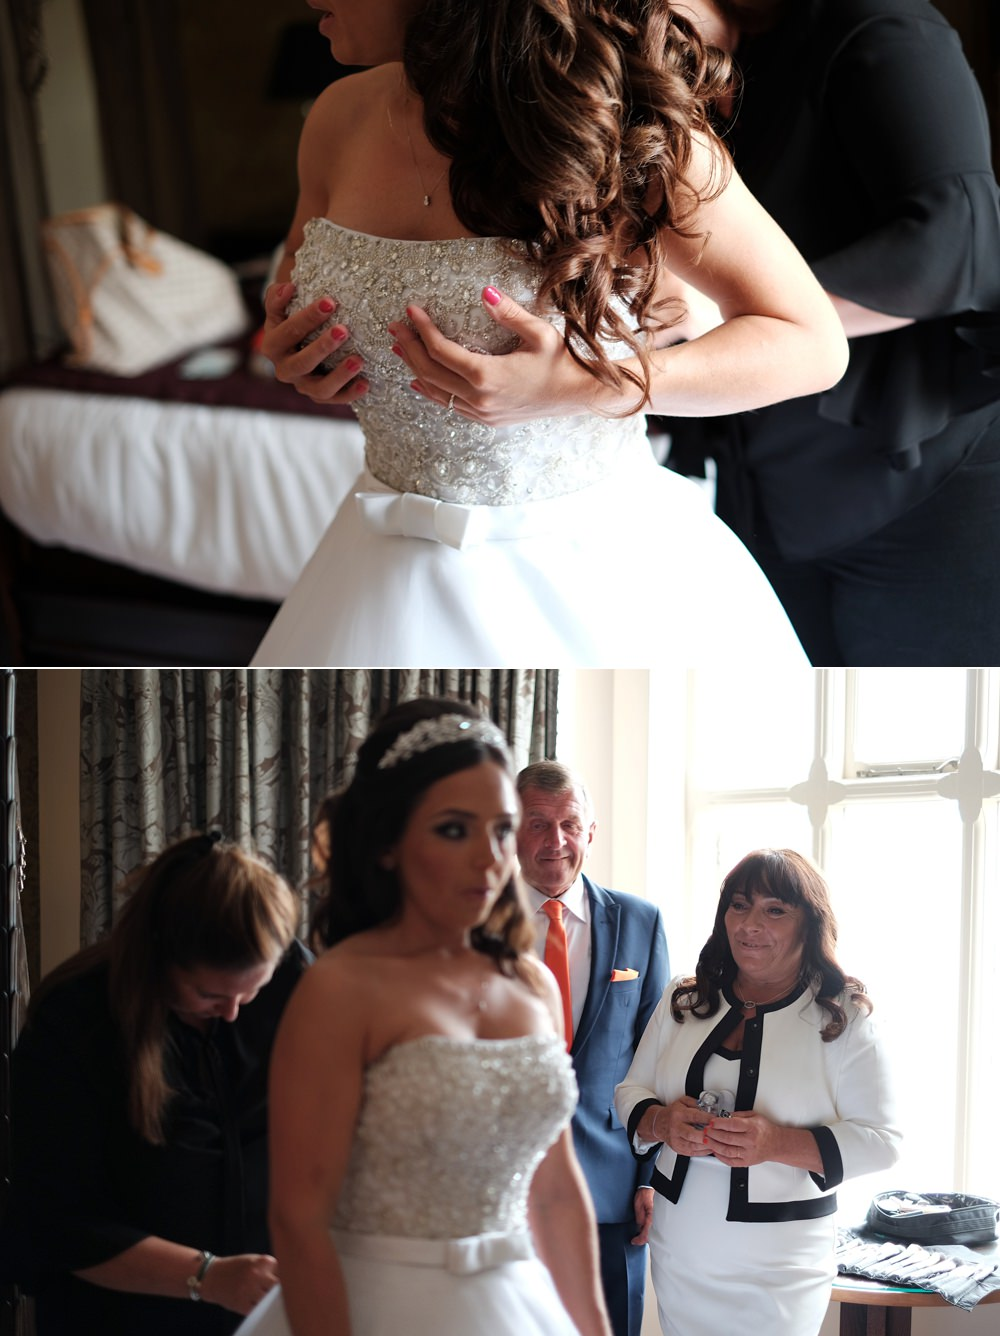 documentary-wedding-photography-essex_0106.jpg